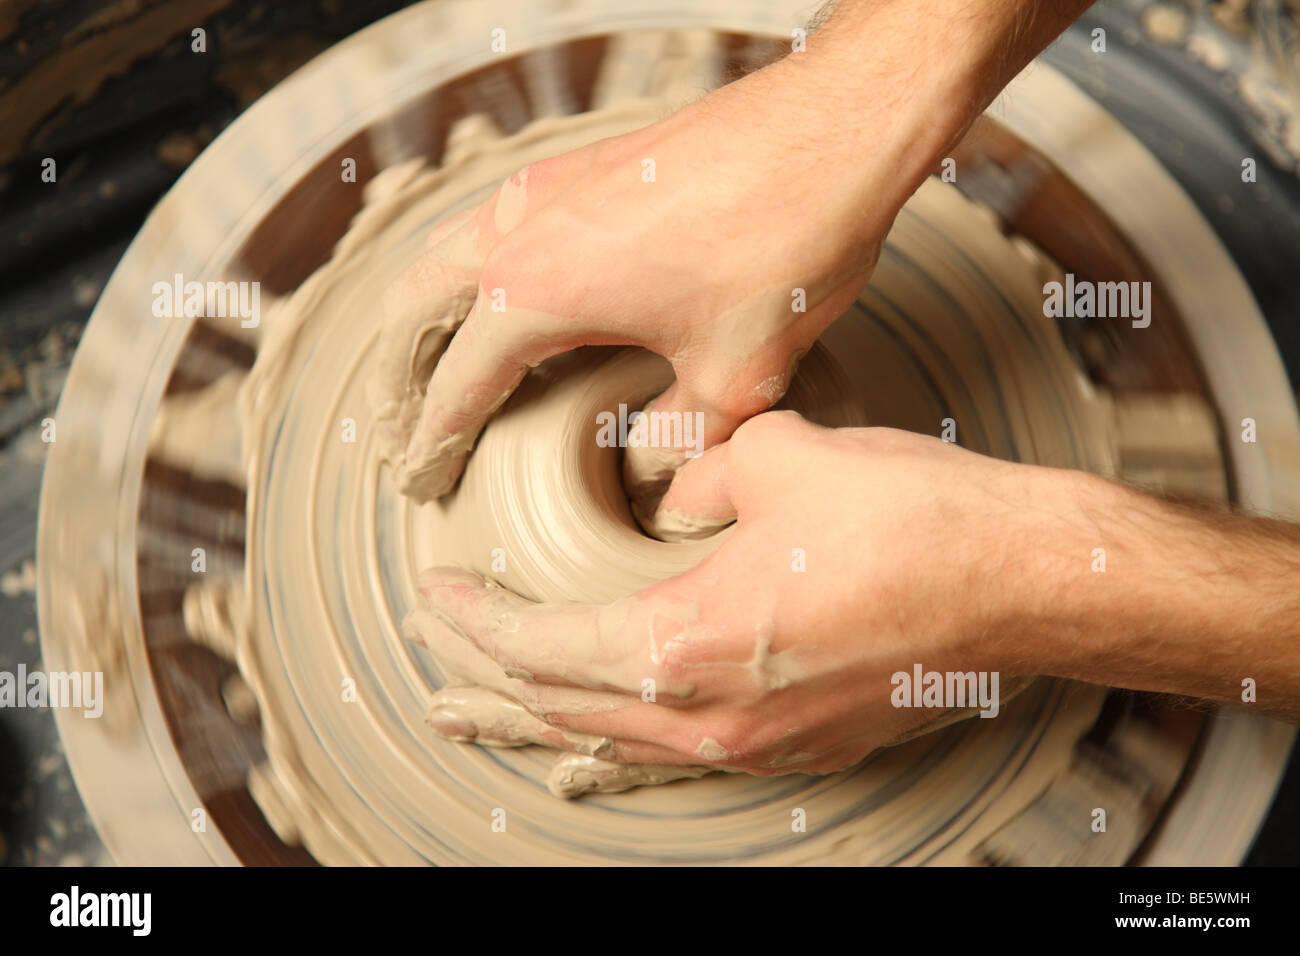 Closeup of hands working on pottery wheel - Stock Image